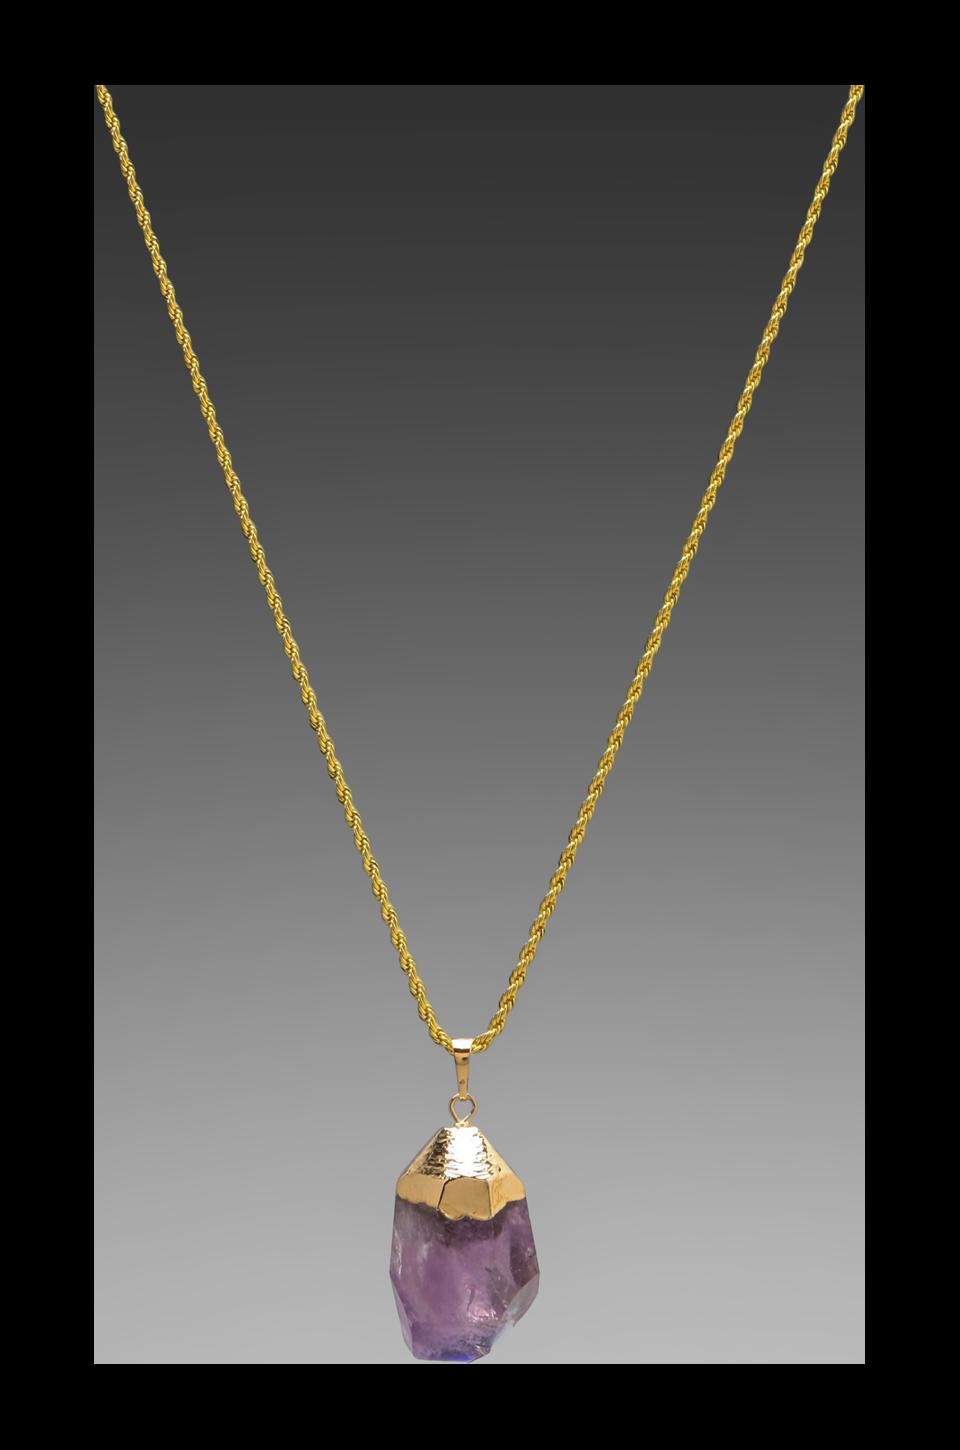 Kenneth Jay Lane Gold Chain Foil Top and Stone Necklace in Amy